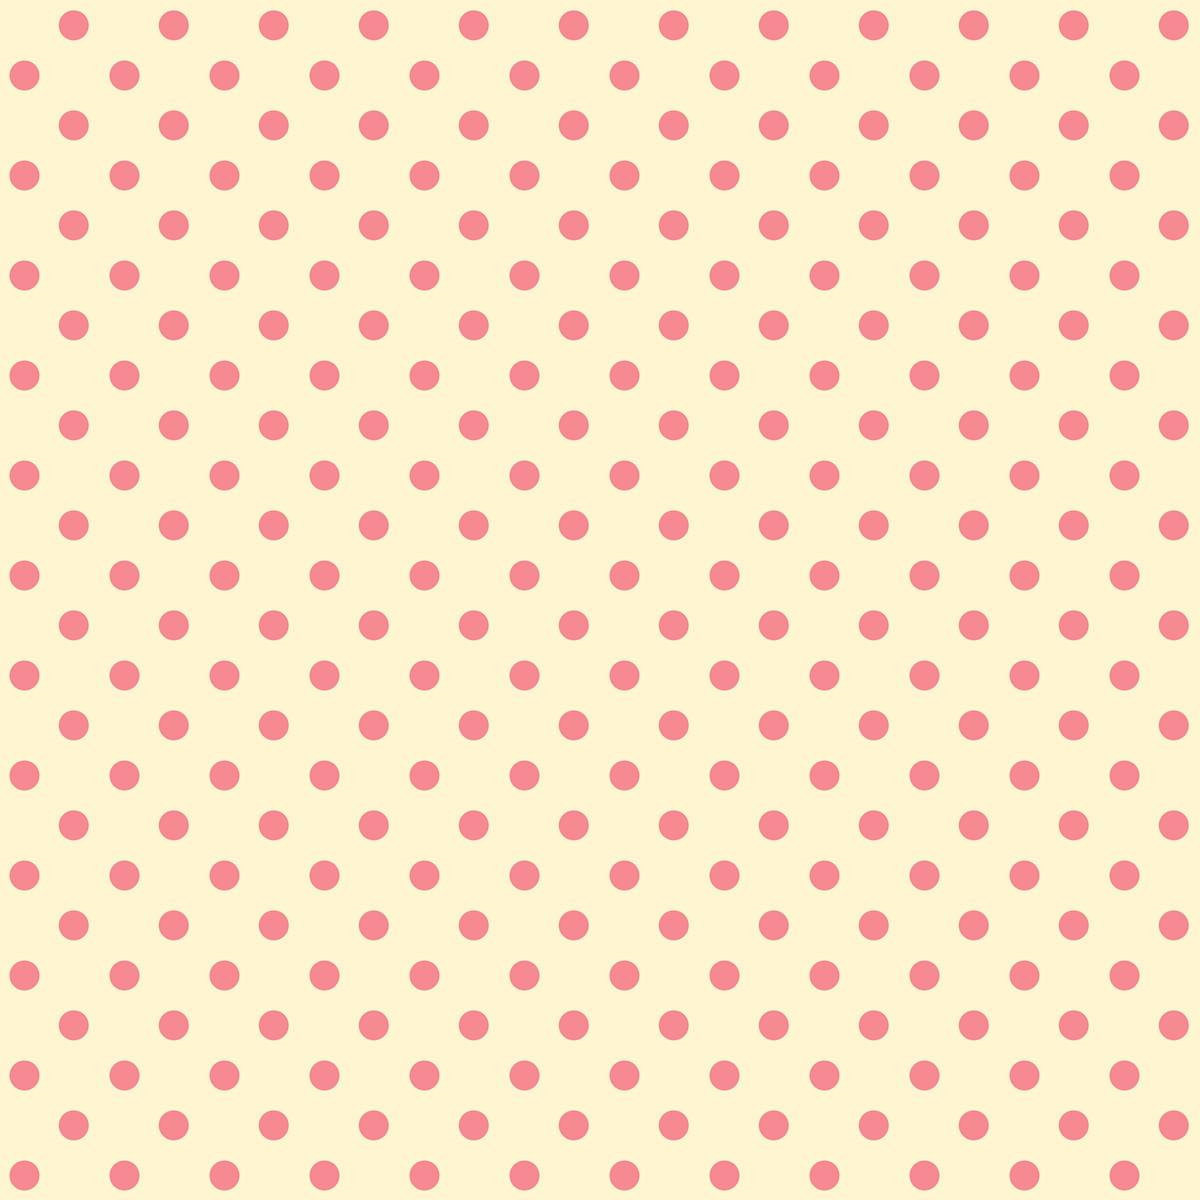 Another Digital Polka Dot Scrapbooking Paper Set